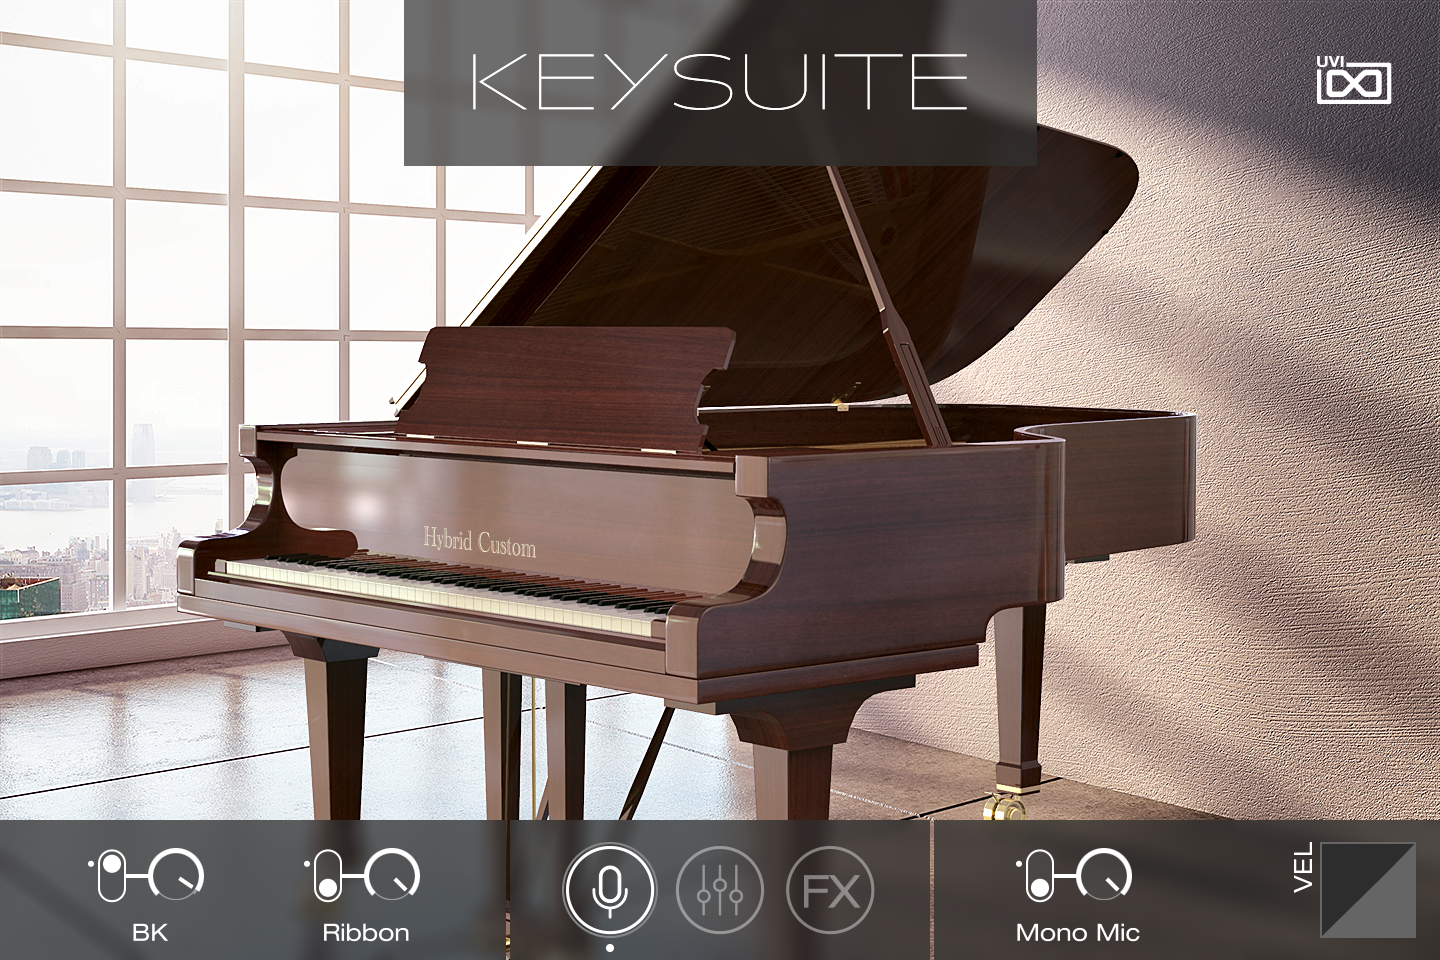 UVI Key Suite Acoustic | Hybrid Custom Main